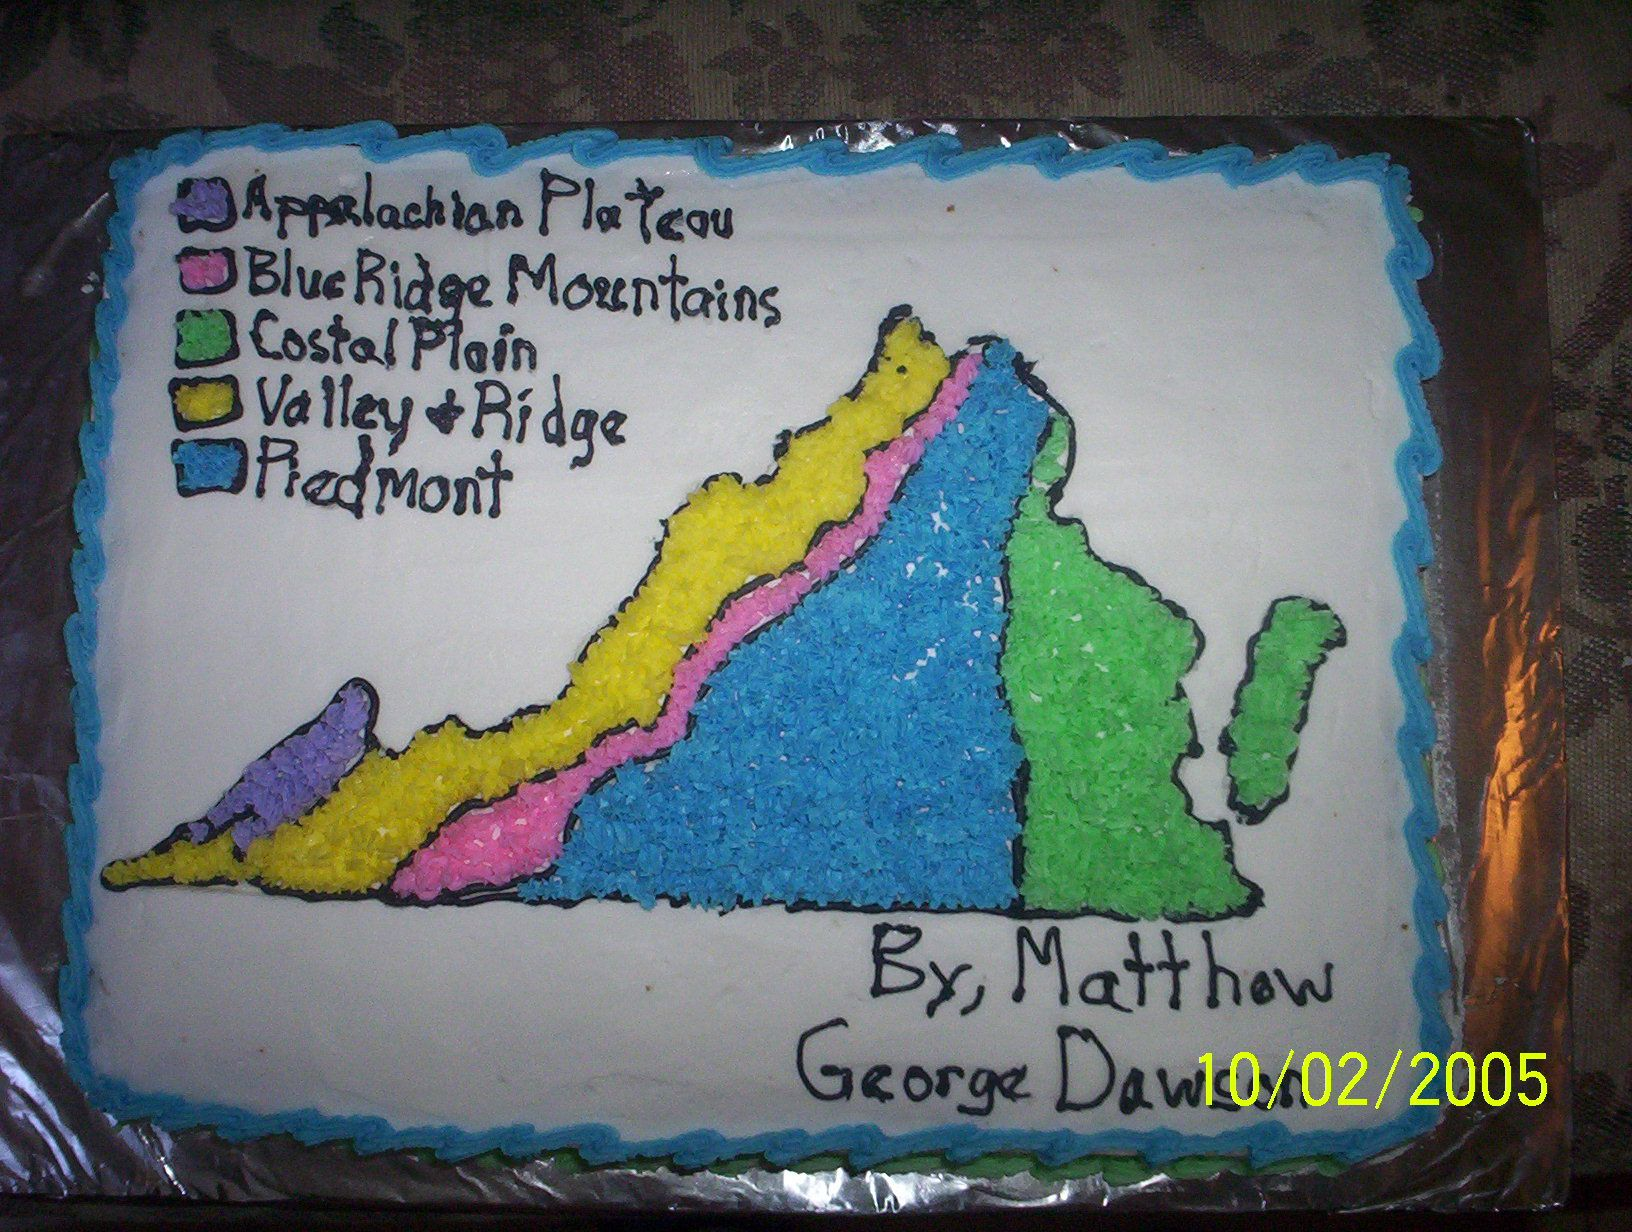 Geographic Regions Of Virginia Map.Virginia Regions Map My Nephew Had To Draw A Map Of Virginia And